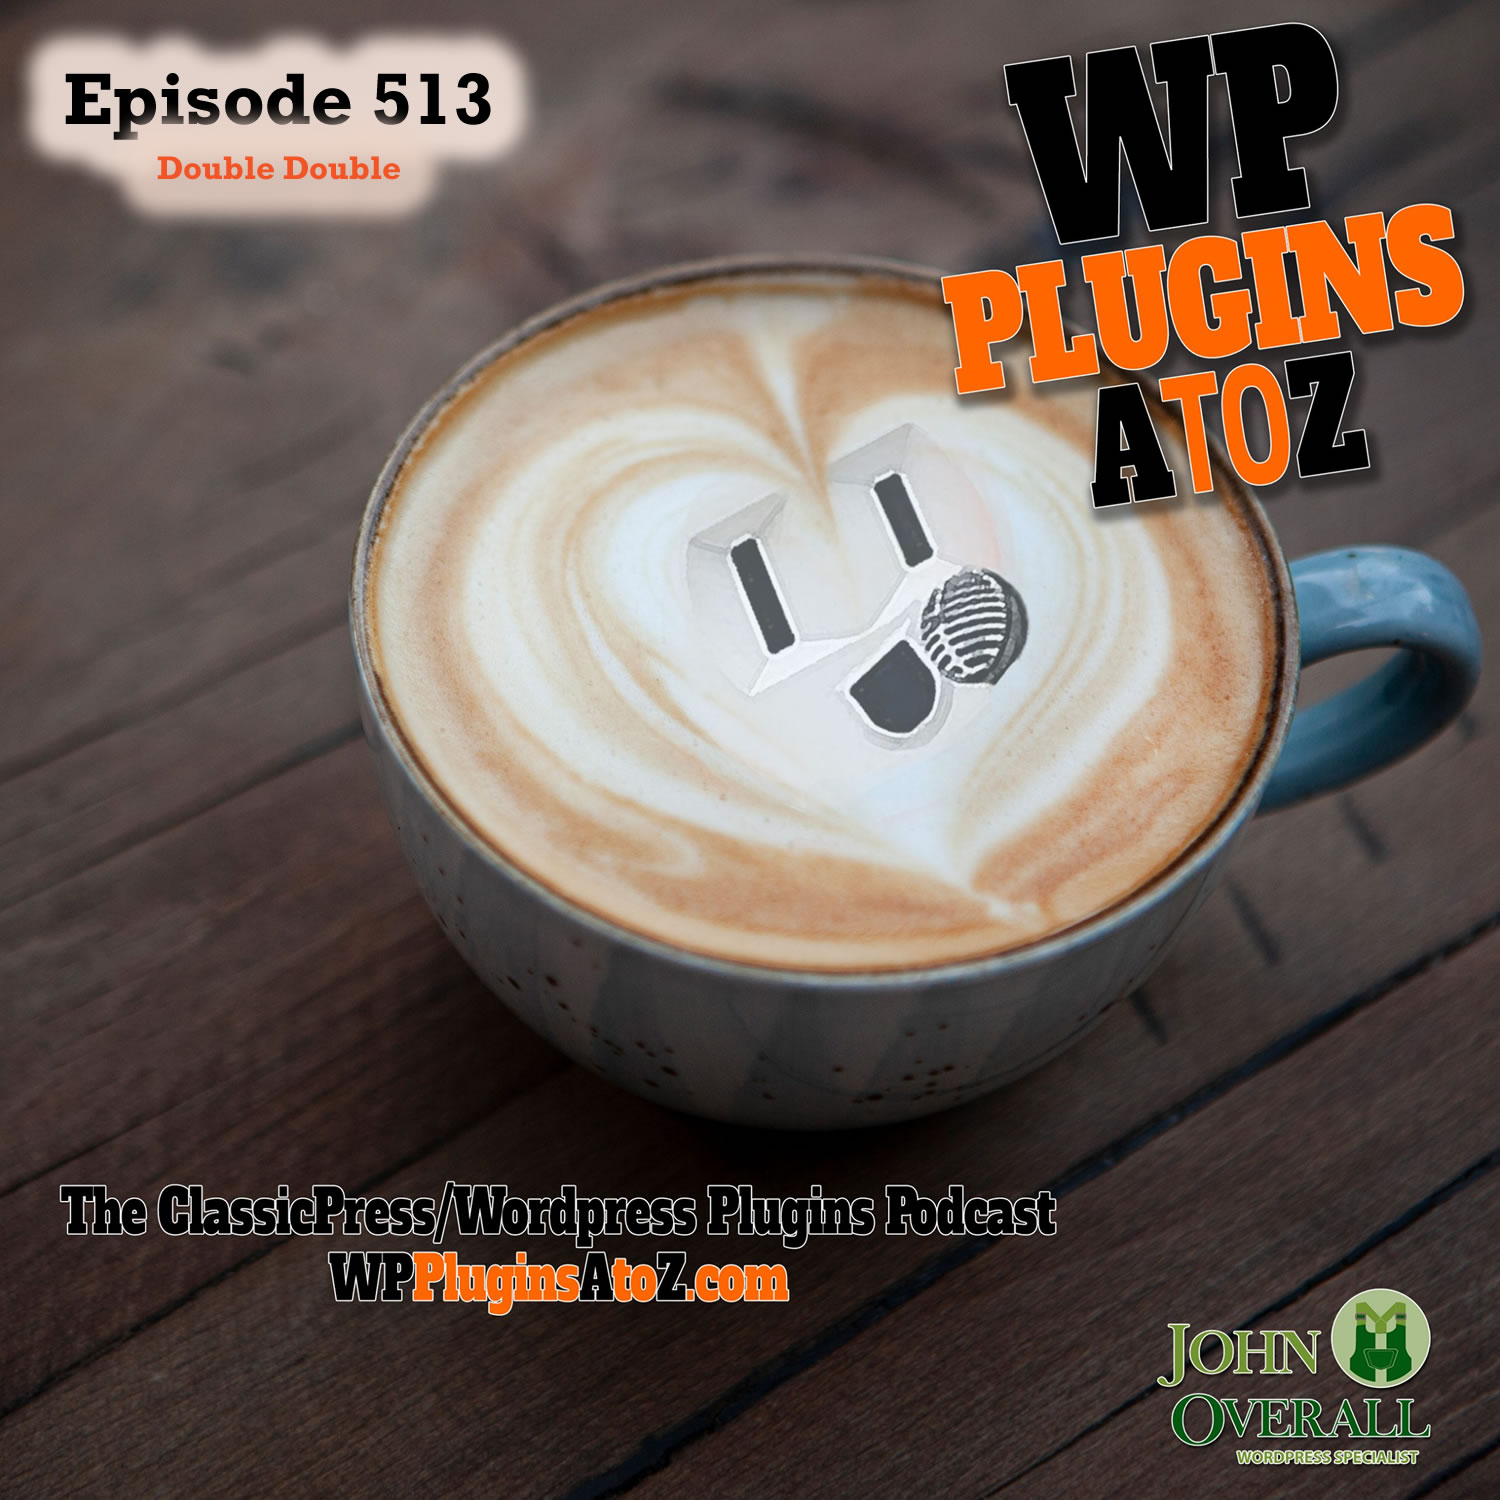 It's Episode 513 - We have plugins for Being a Tax Collector, Multiple Emails, Smacking Spammers, Stopping the Nagging, Github-Github ..., and ClassicPress Options. It's all coming up on WordPress Plugins A-Z!